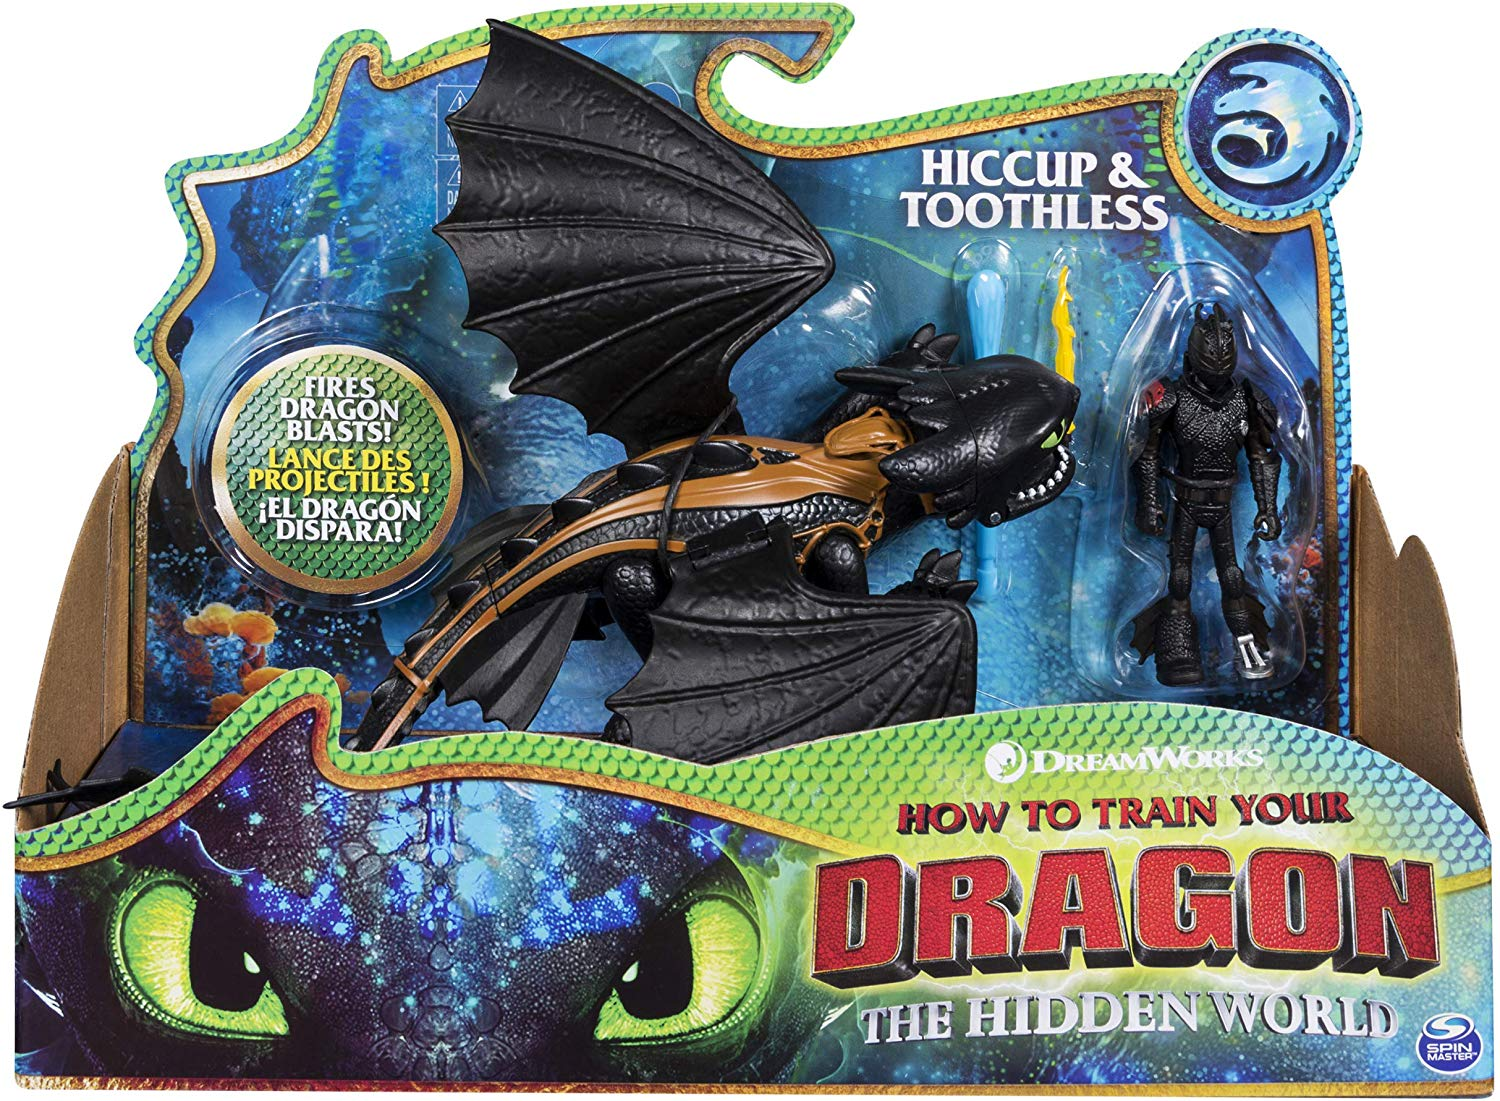 How to Train Your Dragon The Hidden World Toothless & Hiccup